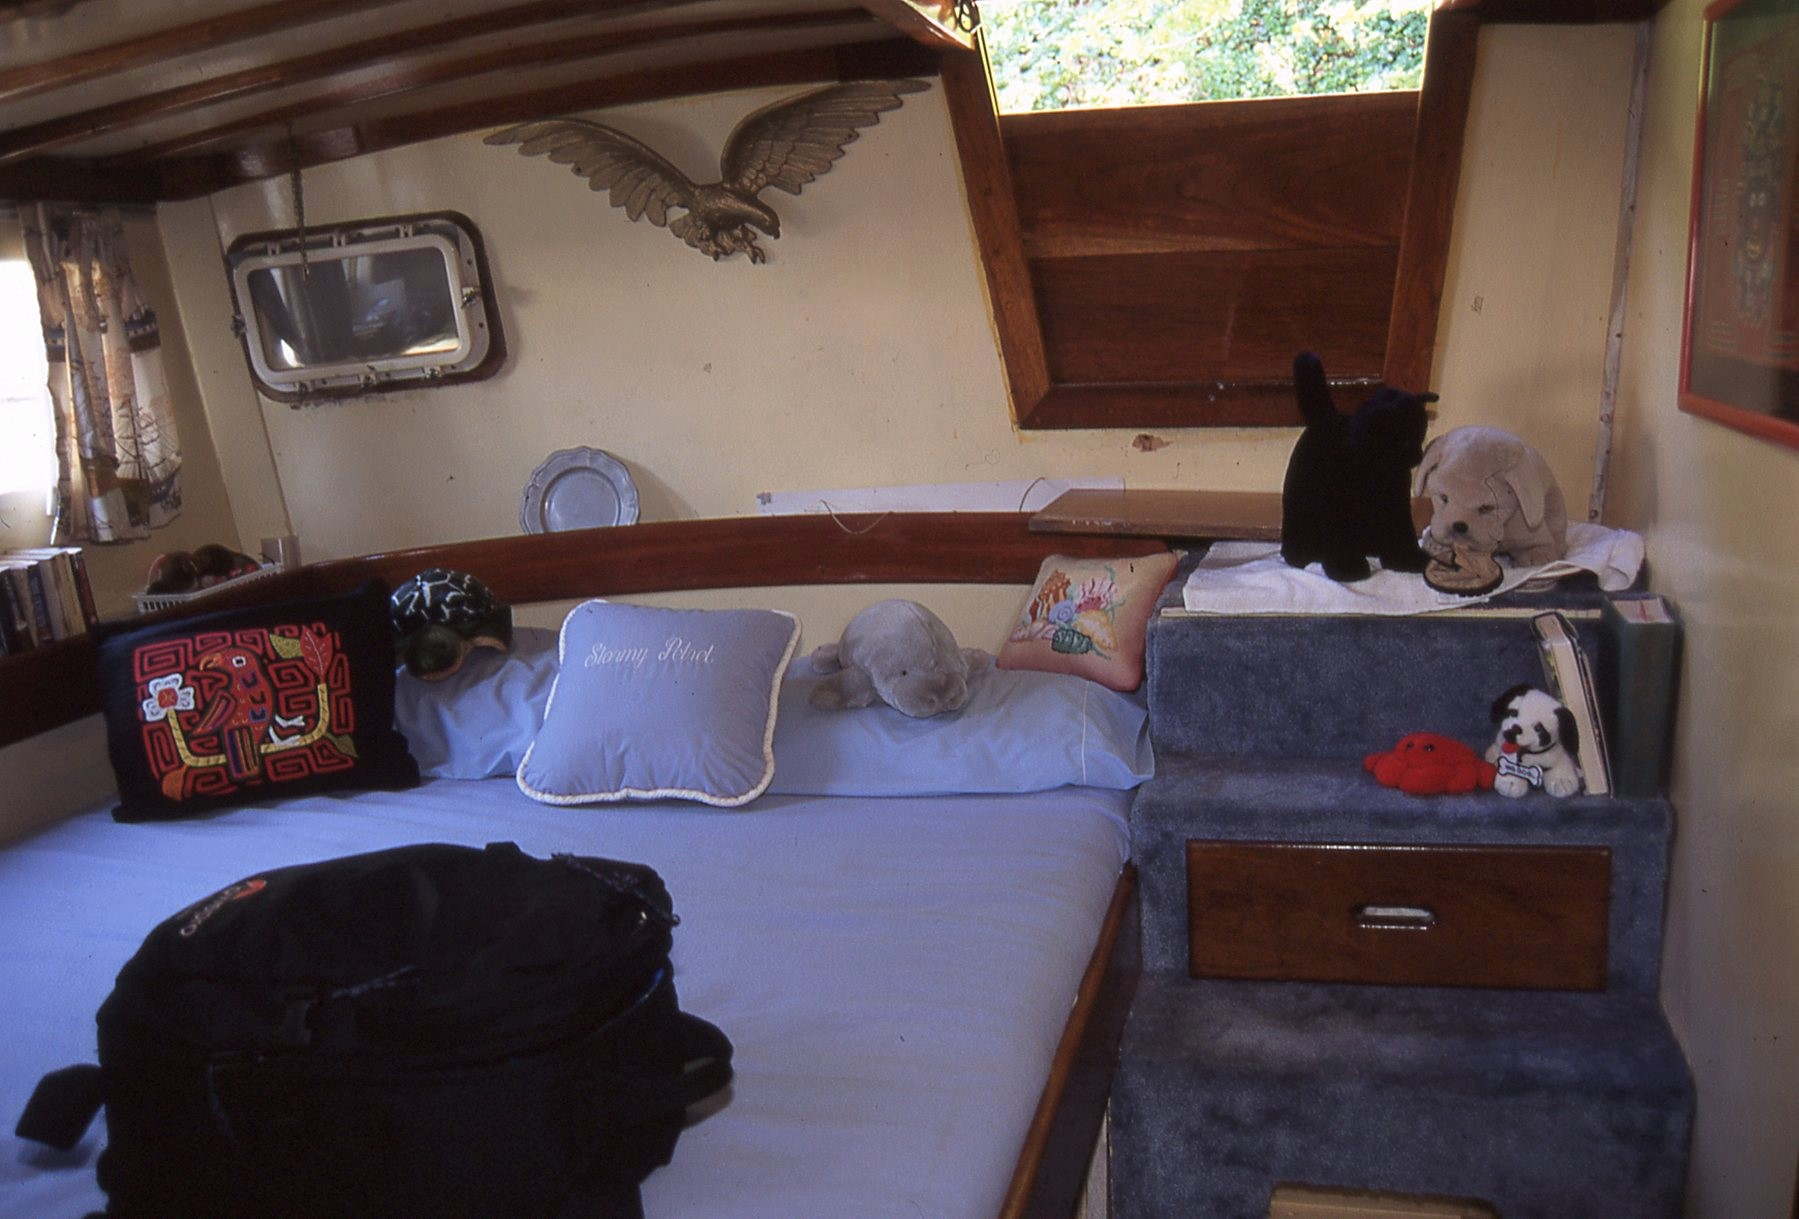 The carpenters in Cartagena did work on the boat when they stayed in Columbia, expanding the aft cabin. Not the red Mola pillow from the San Blas Islands.